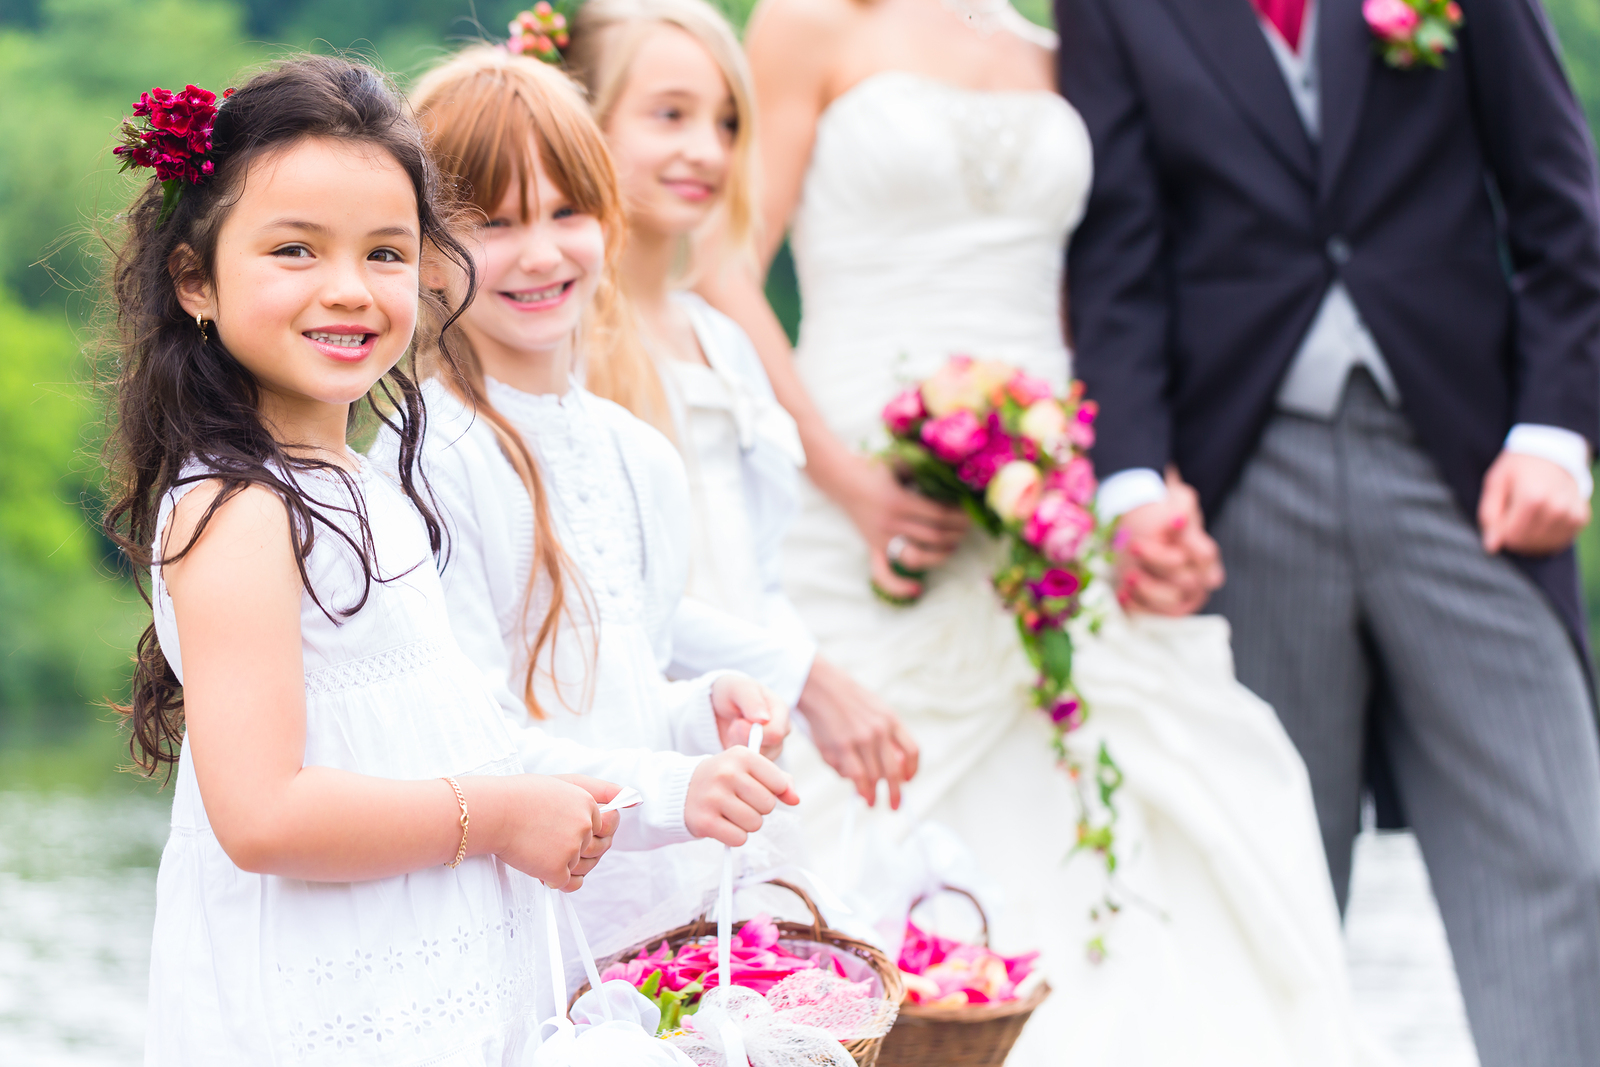 Remarrying? Protect Your Children With a Prenup | Schultz Family Law